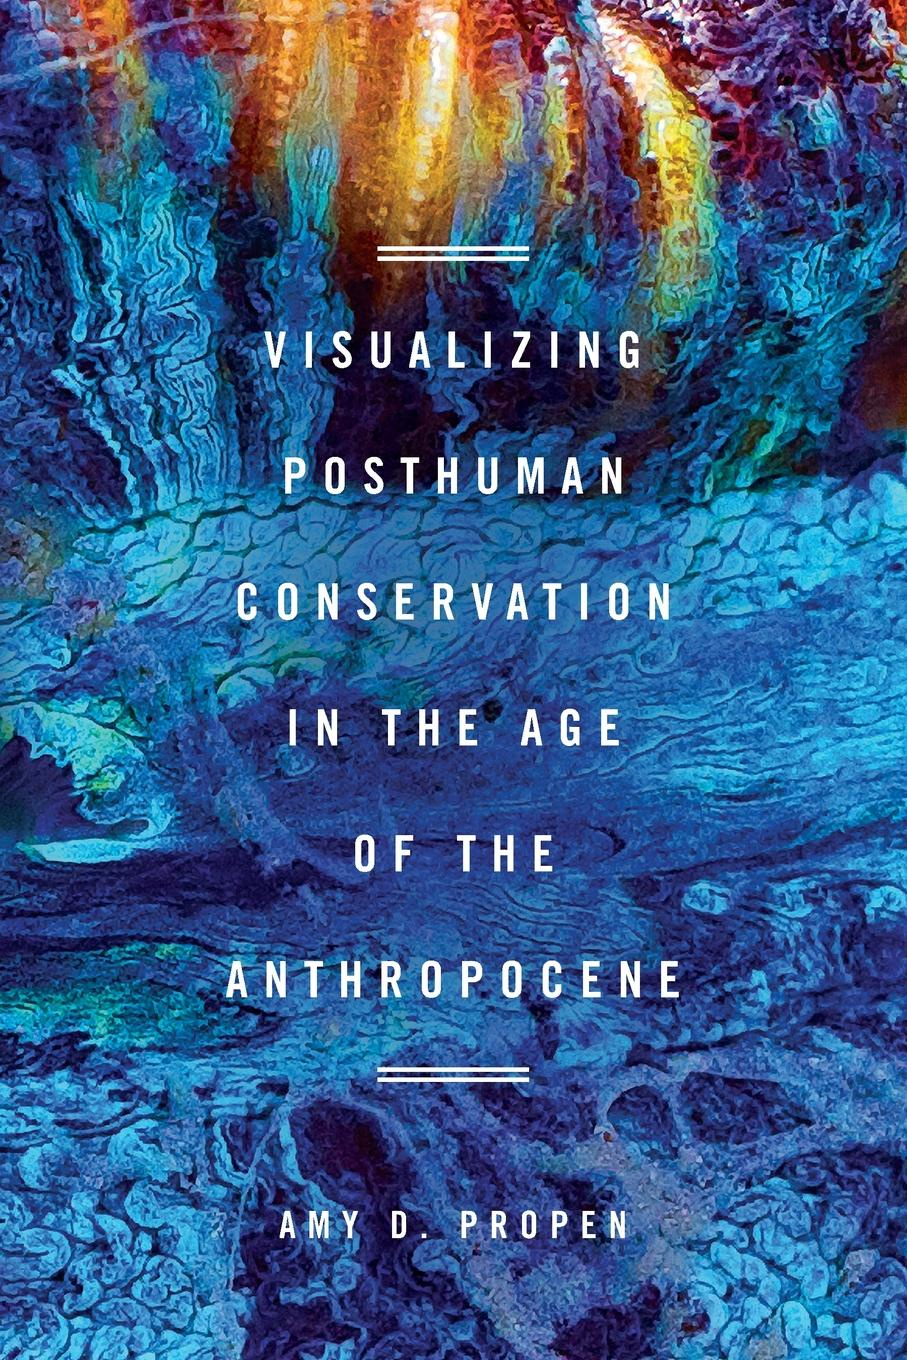 Amy D Propen Visualizing Posthuman Conservation in the Age of the Anthropocene michael archer d the forex chartist companion a visual approach to technical analysis